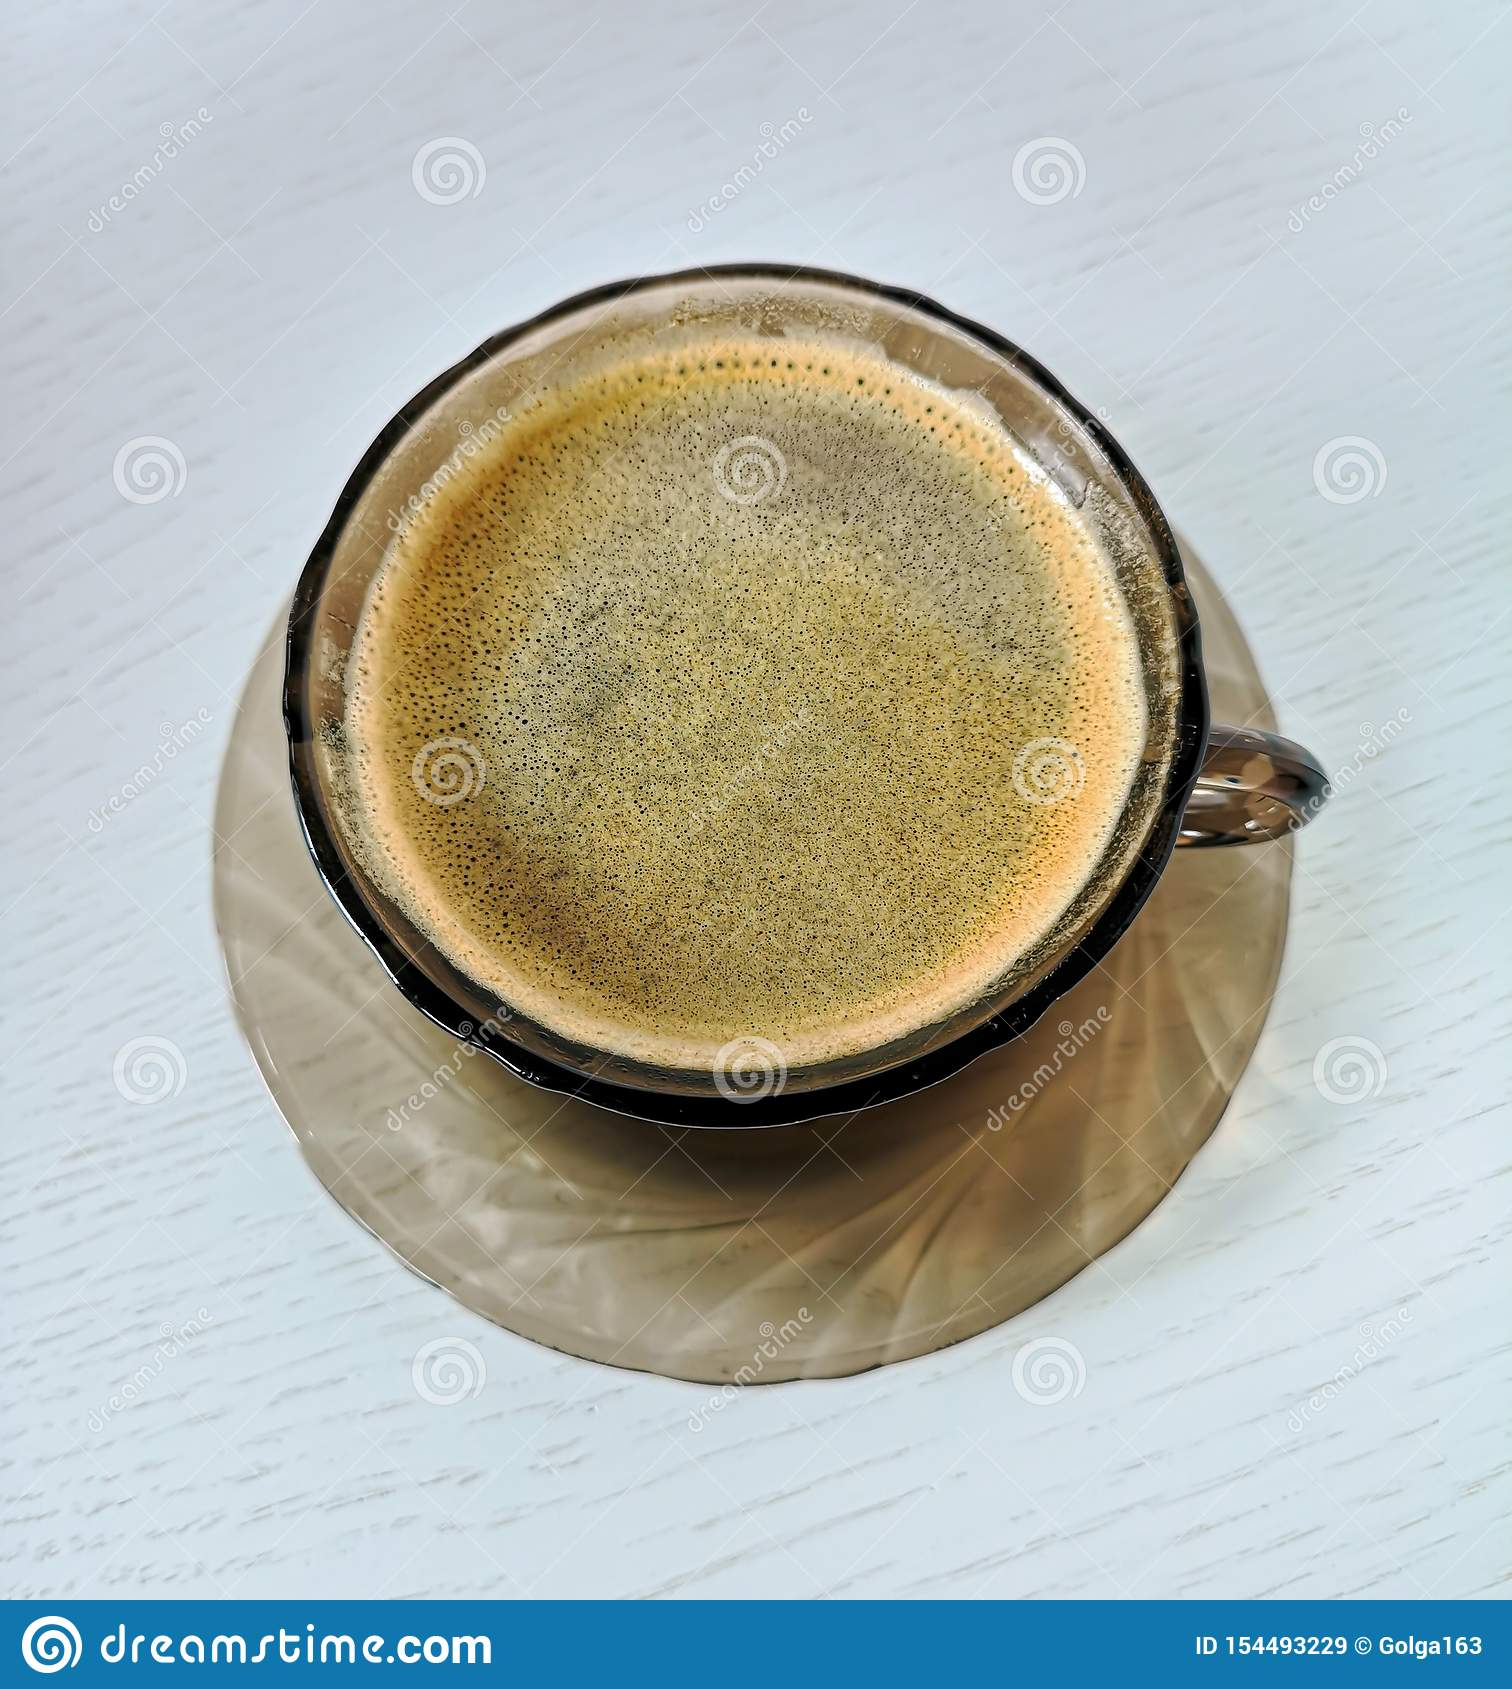 Saucer and cup of tempered brown glass with black coffee stand on a white wooden table